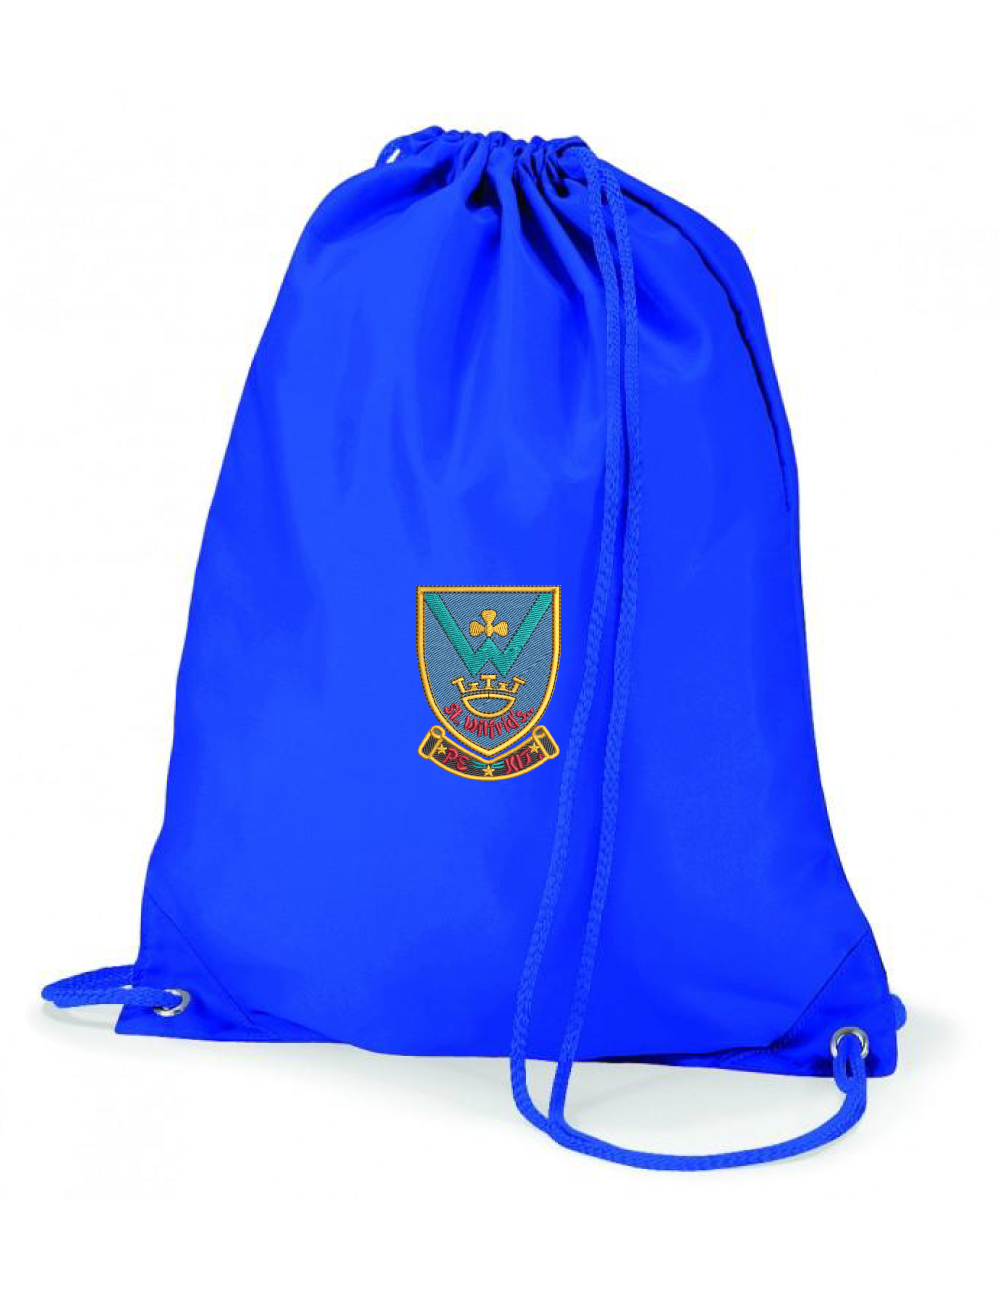 St Wilfrid's Primary School PE Bag